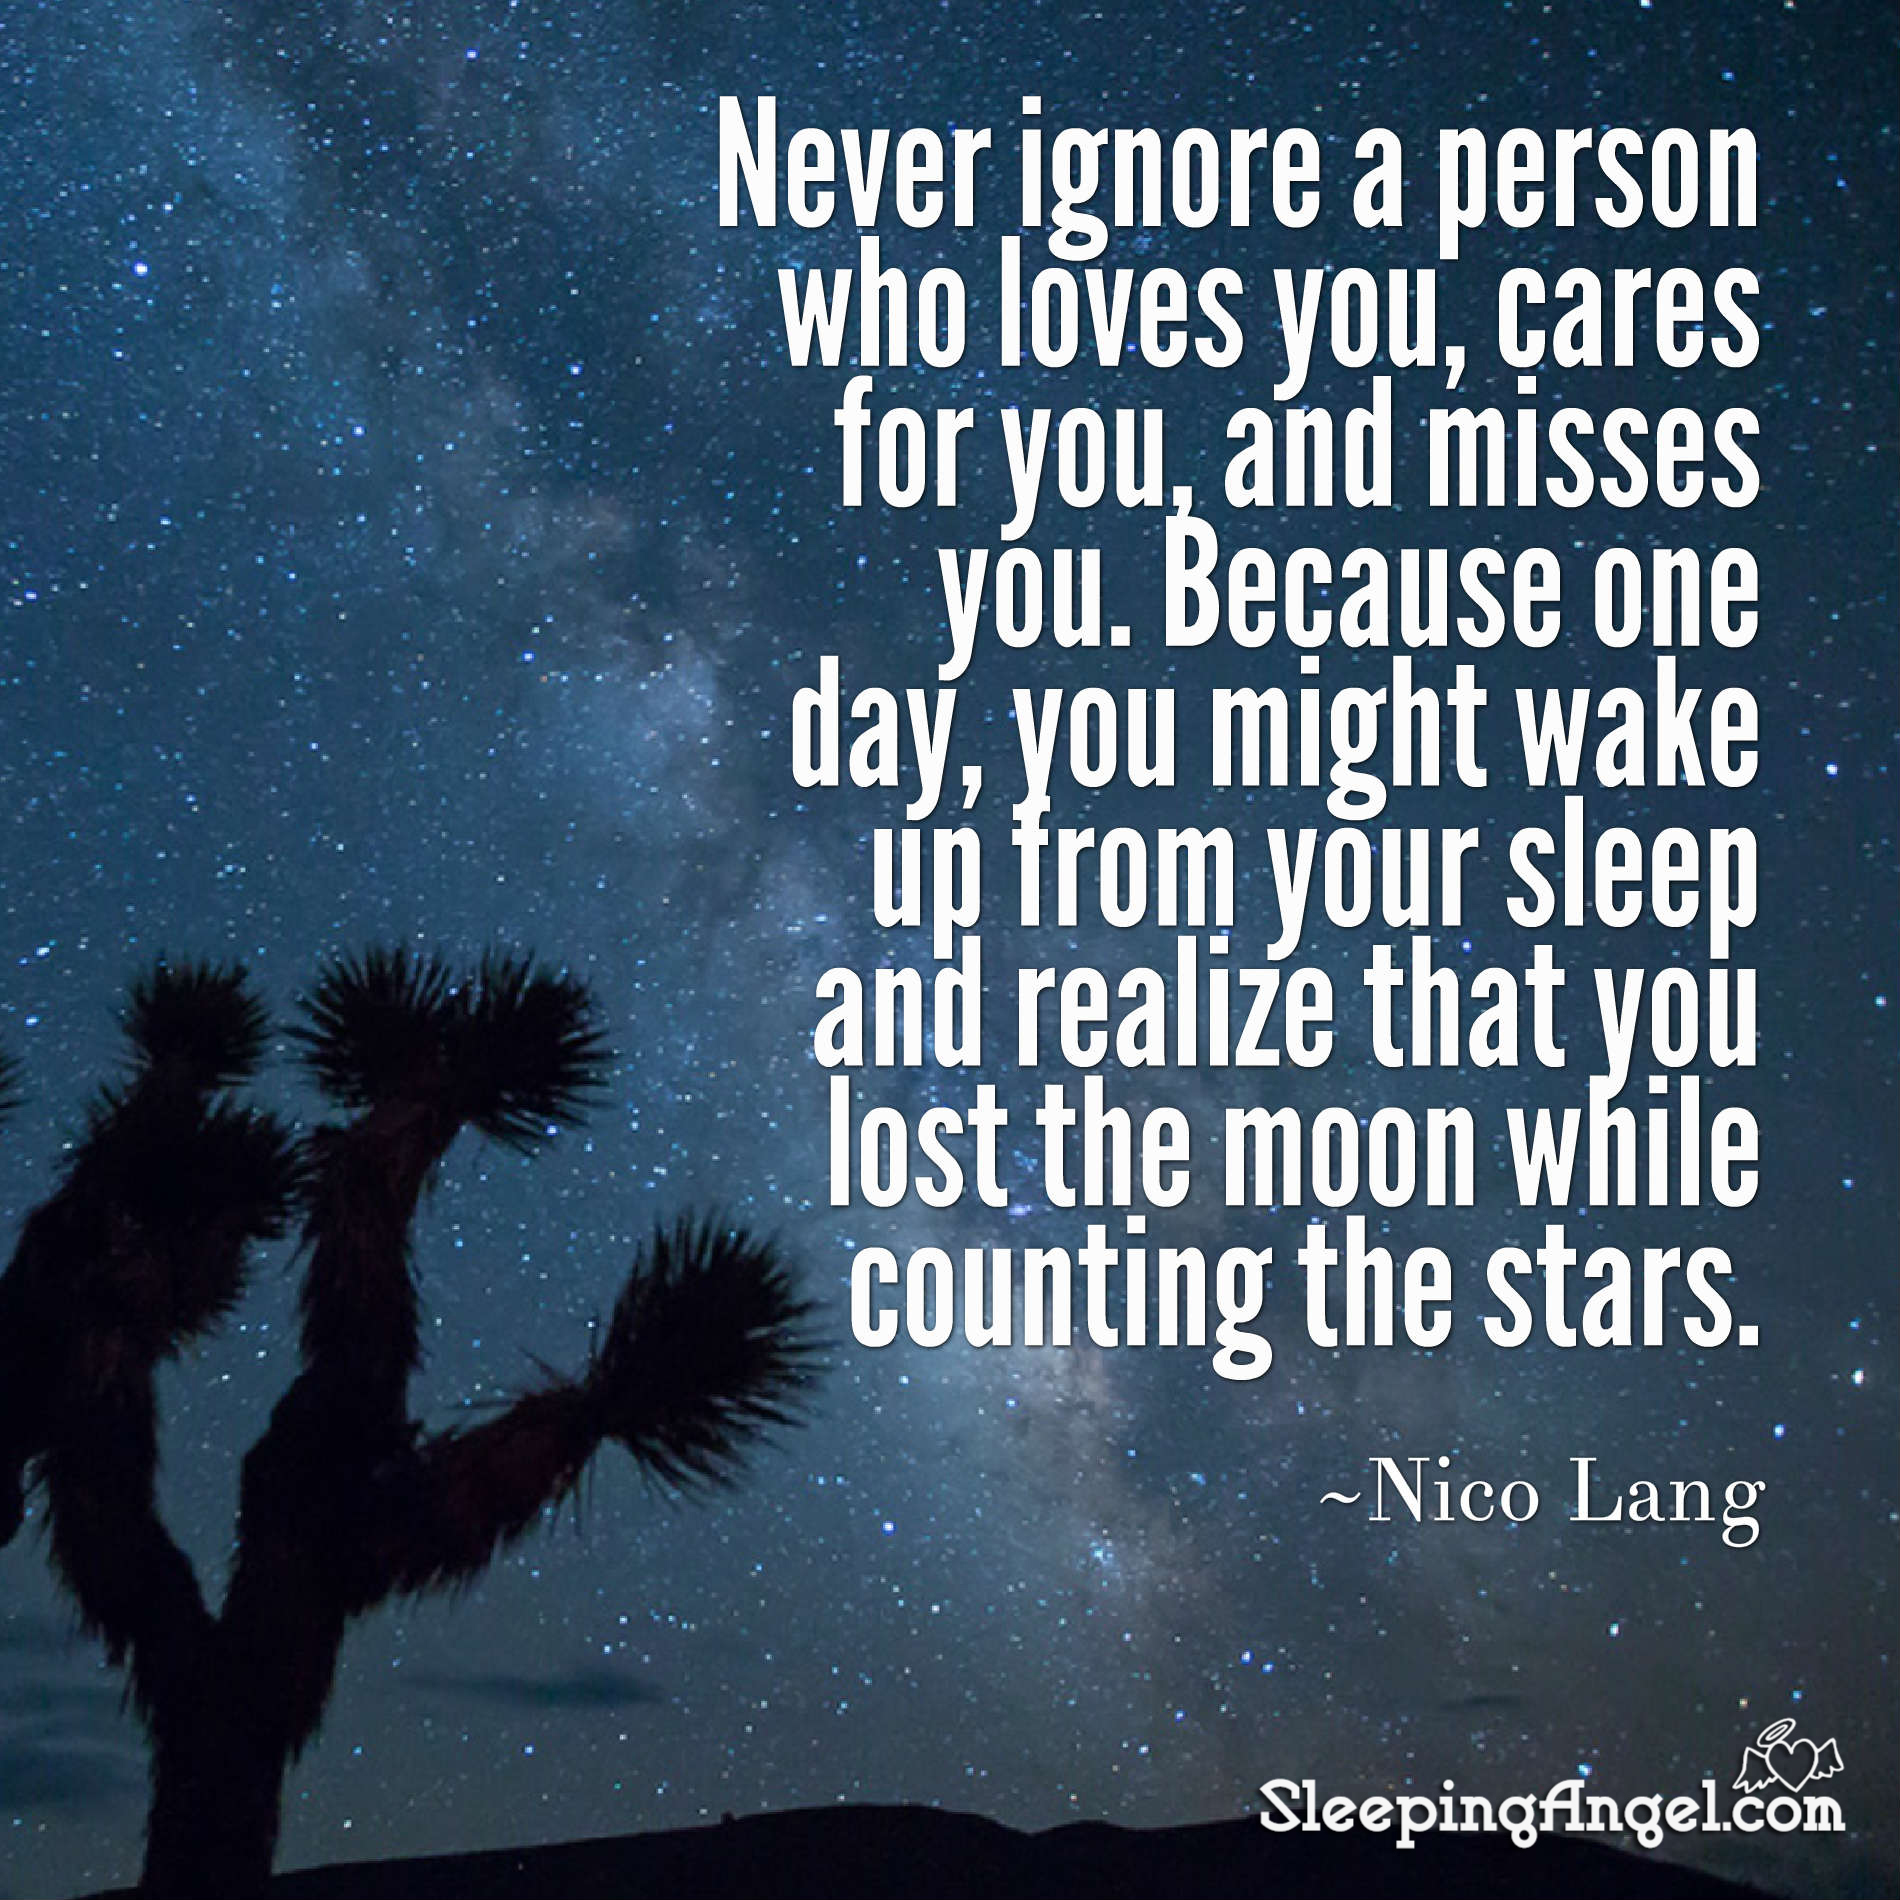 Never Ignore a Person Who Loves You Quote